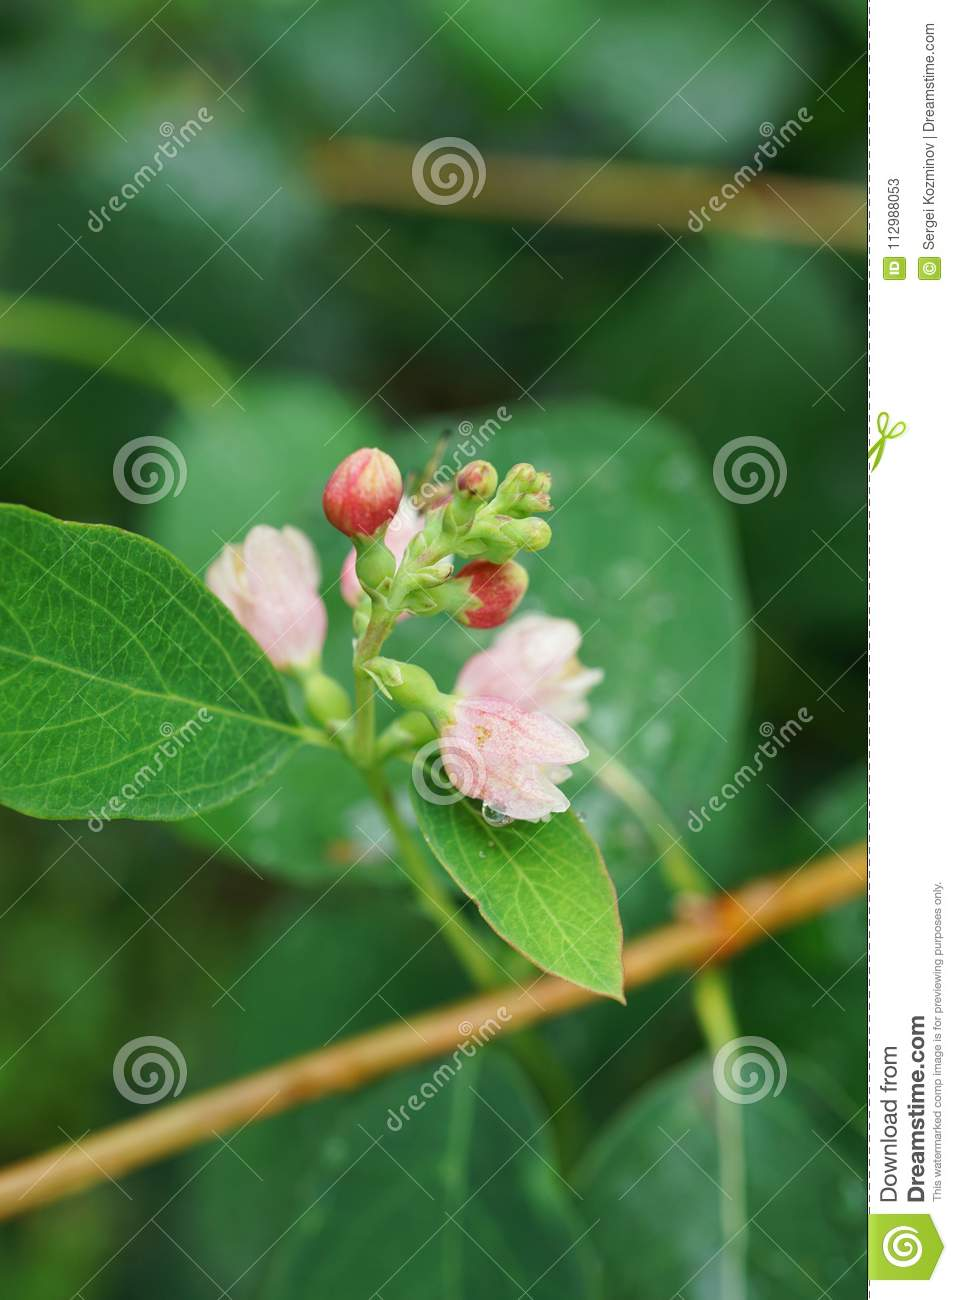 Close-up of white and pink snowberry flowers Symphoricarpos albus on a branch in an alley in the foothills of the Caucasus